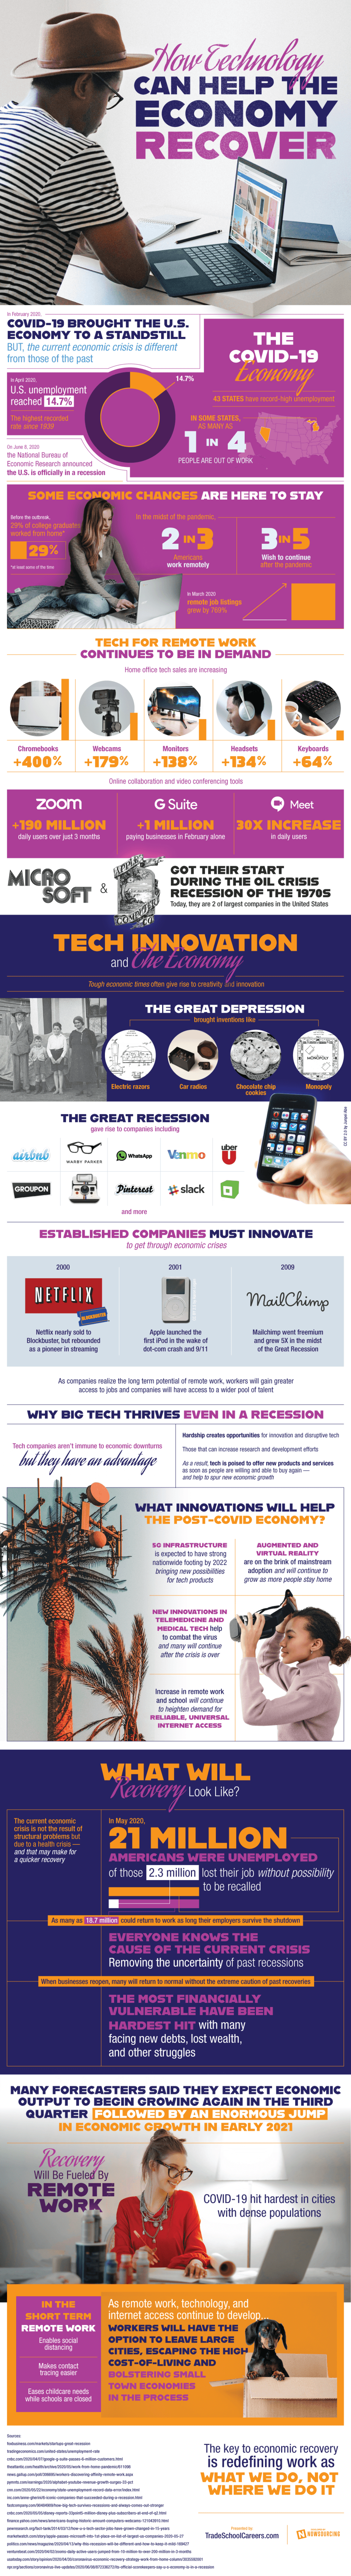 Tech And The Economic Recovery via Brian Wallace